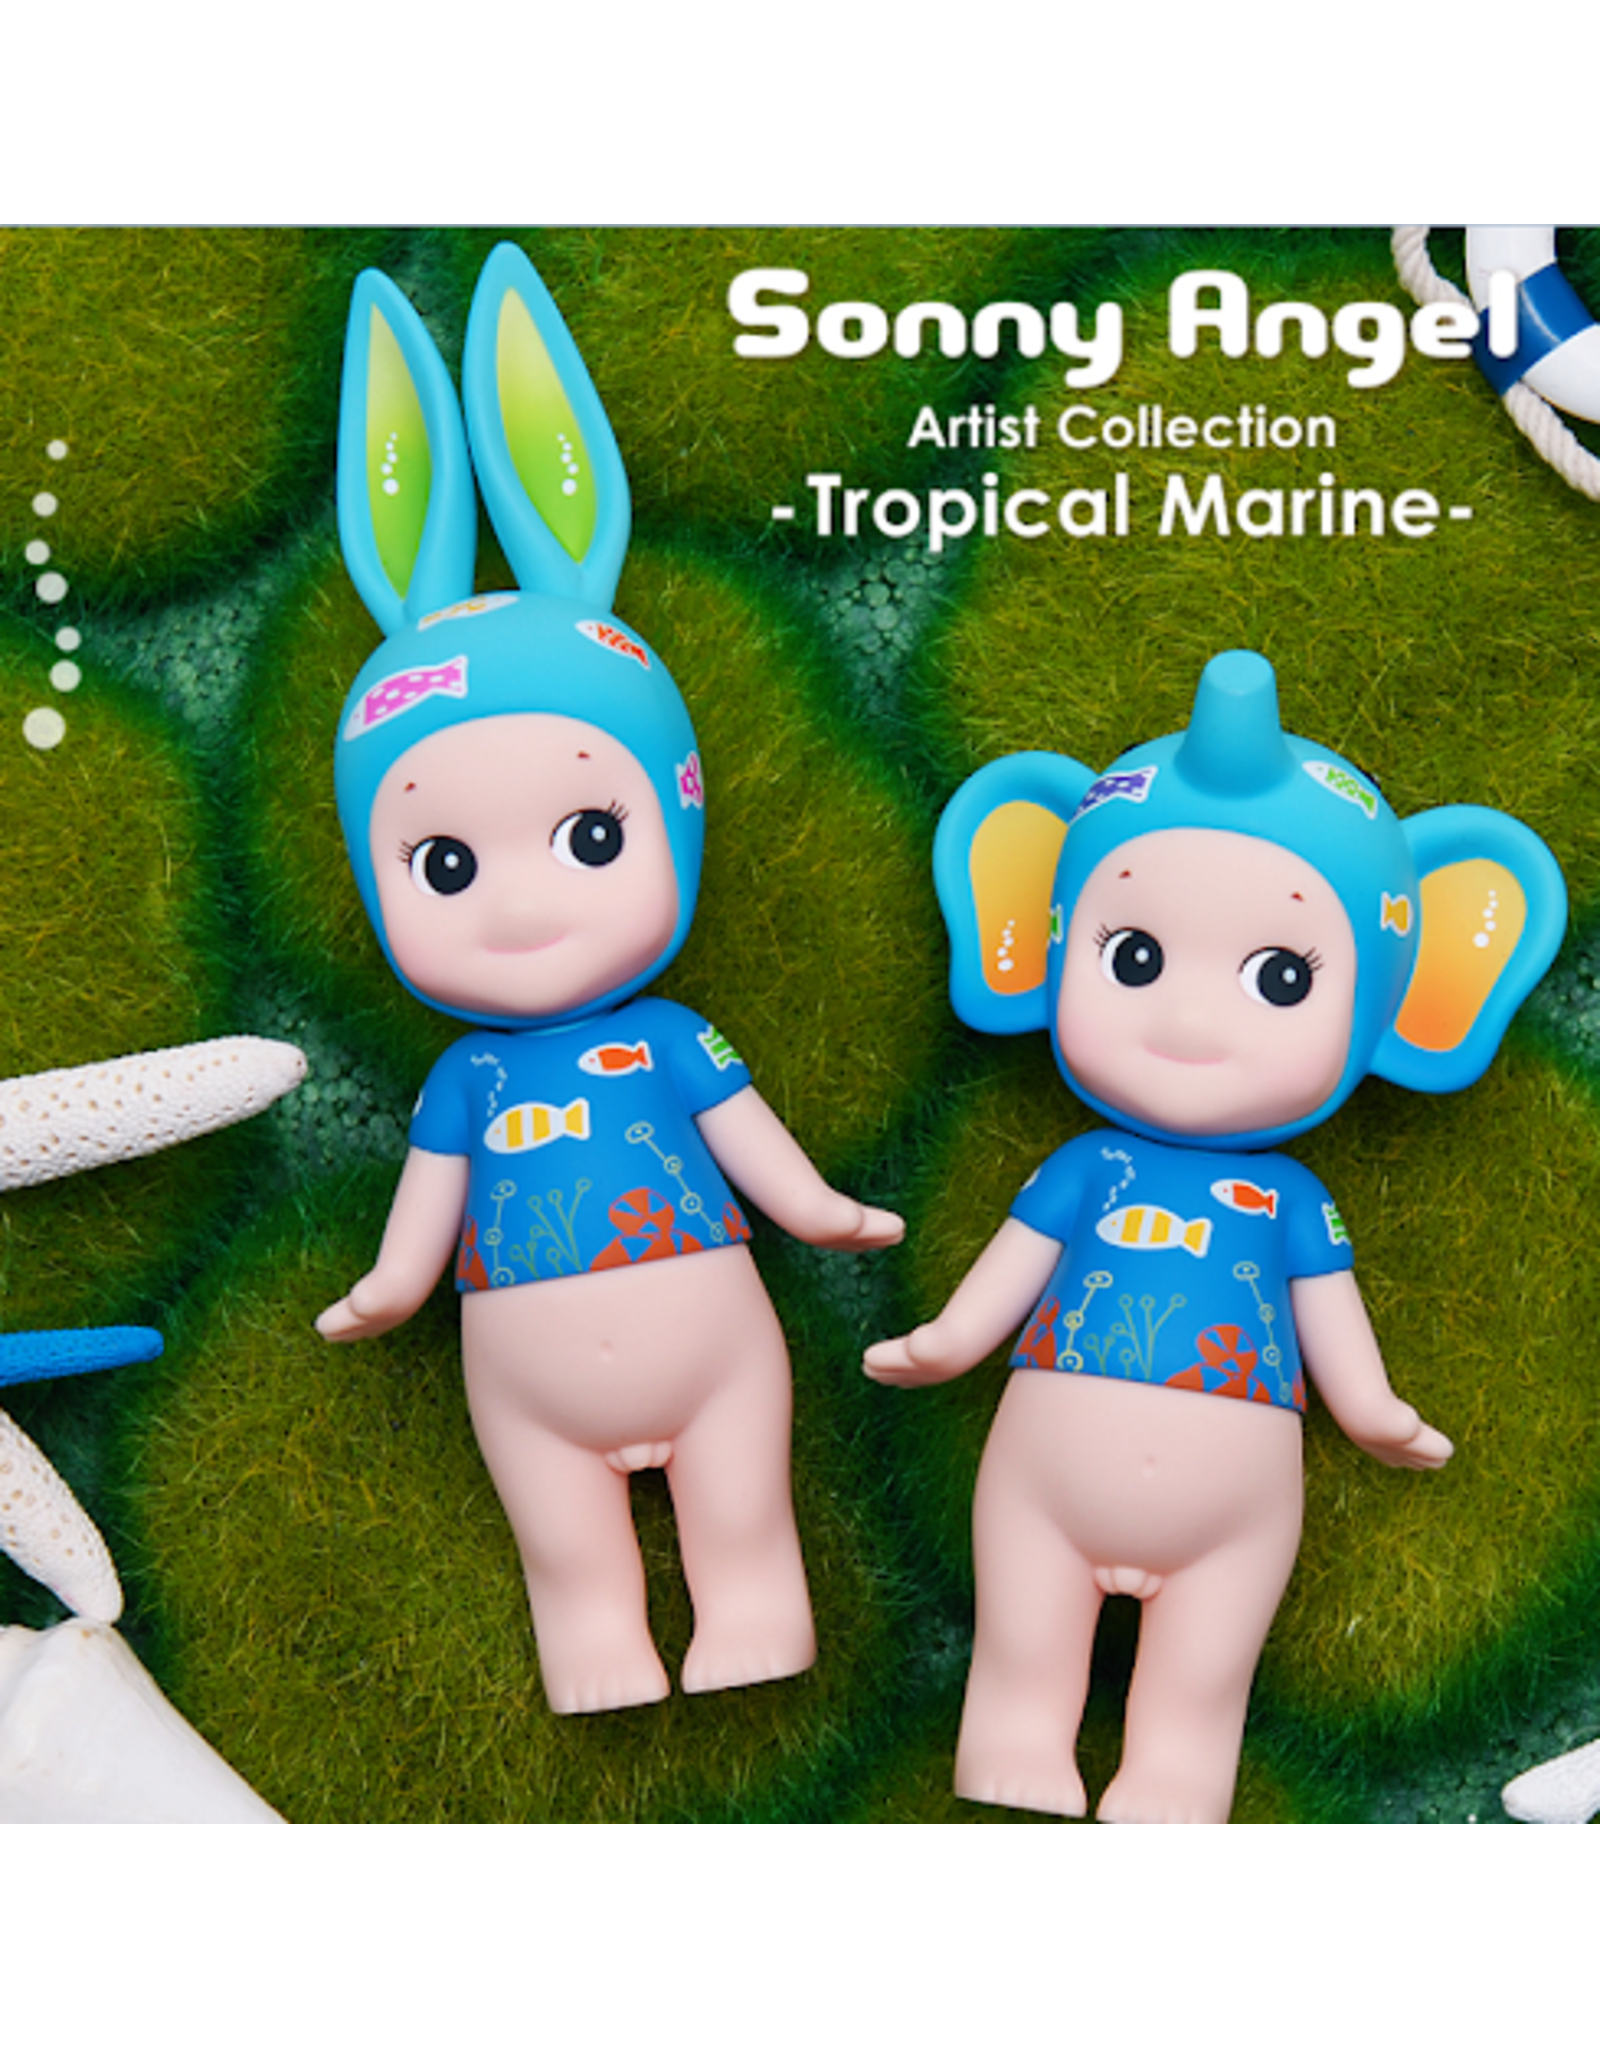 Sonny Angel Artist Collection - Tropical Marine - Olifant